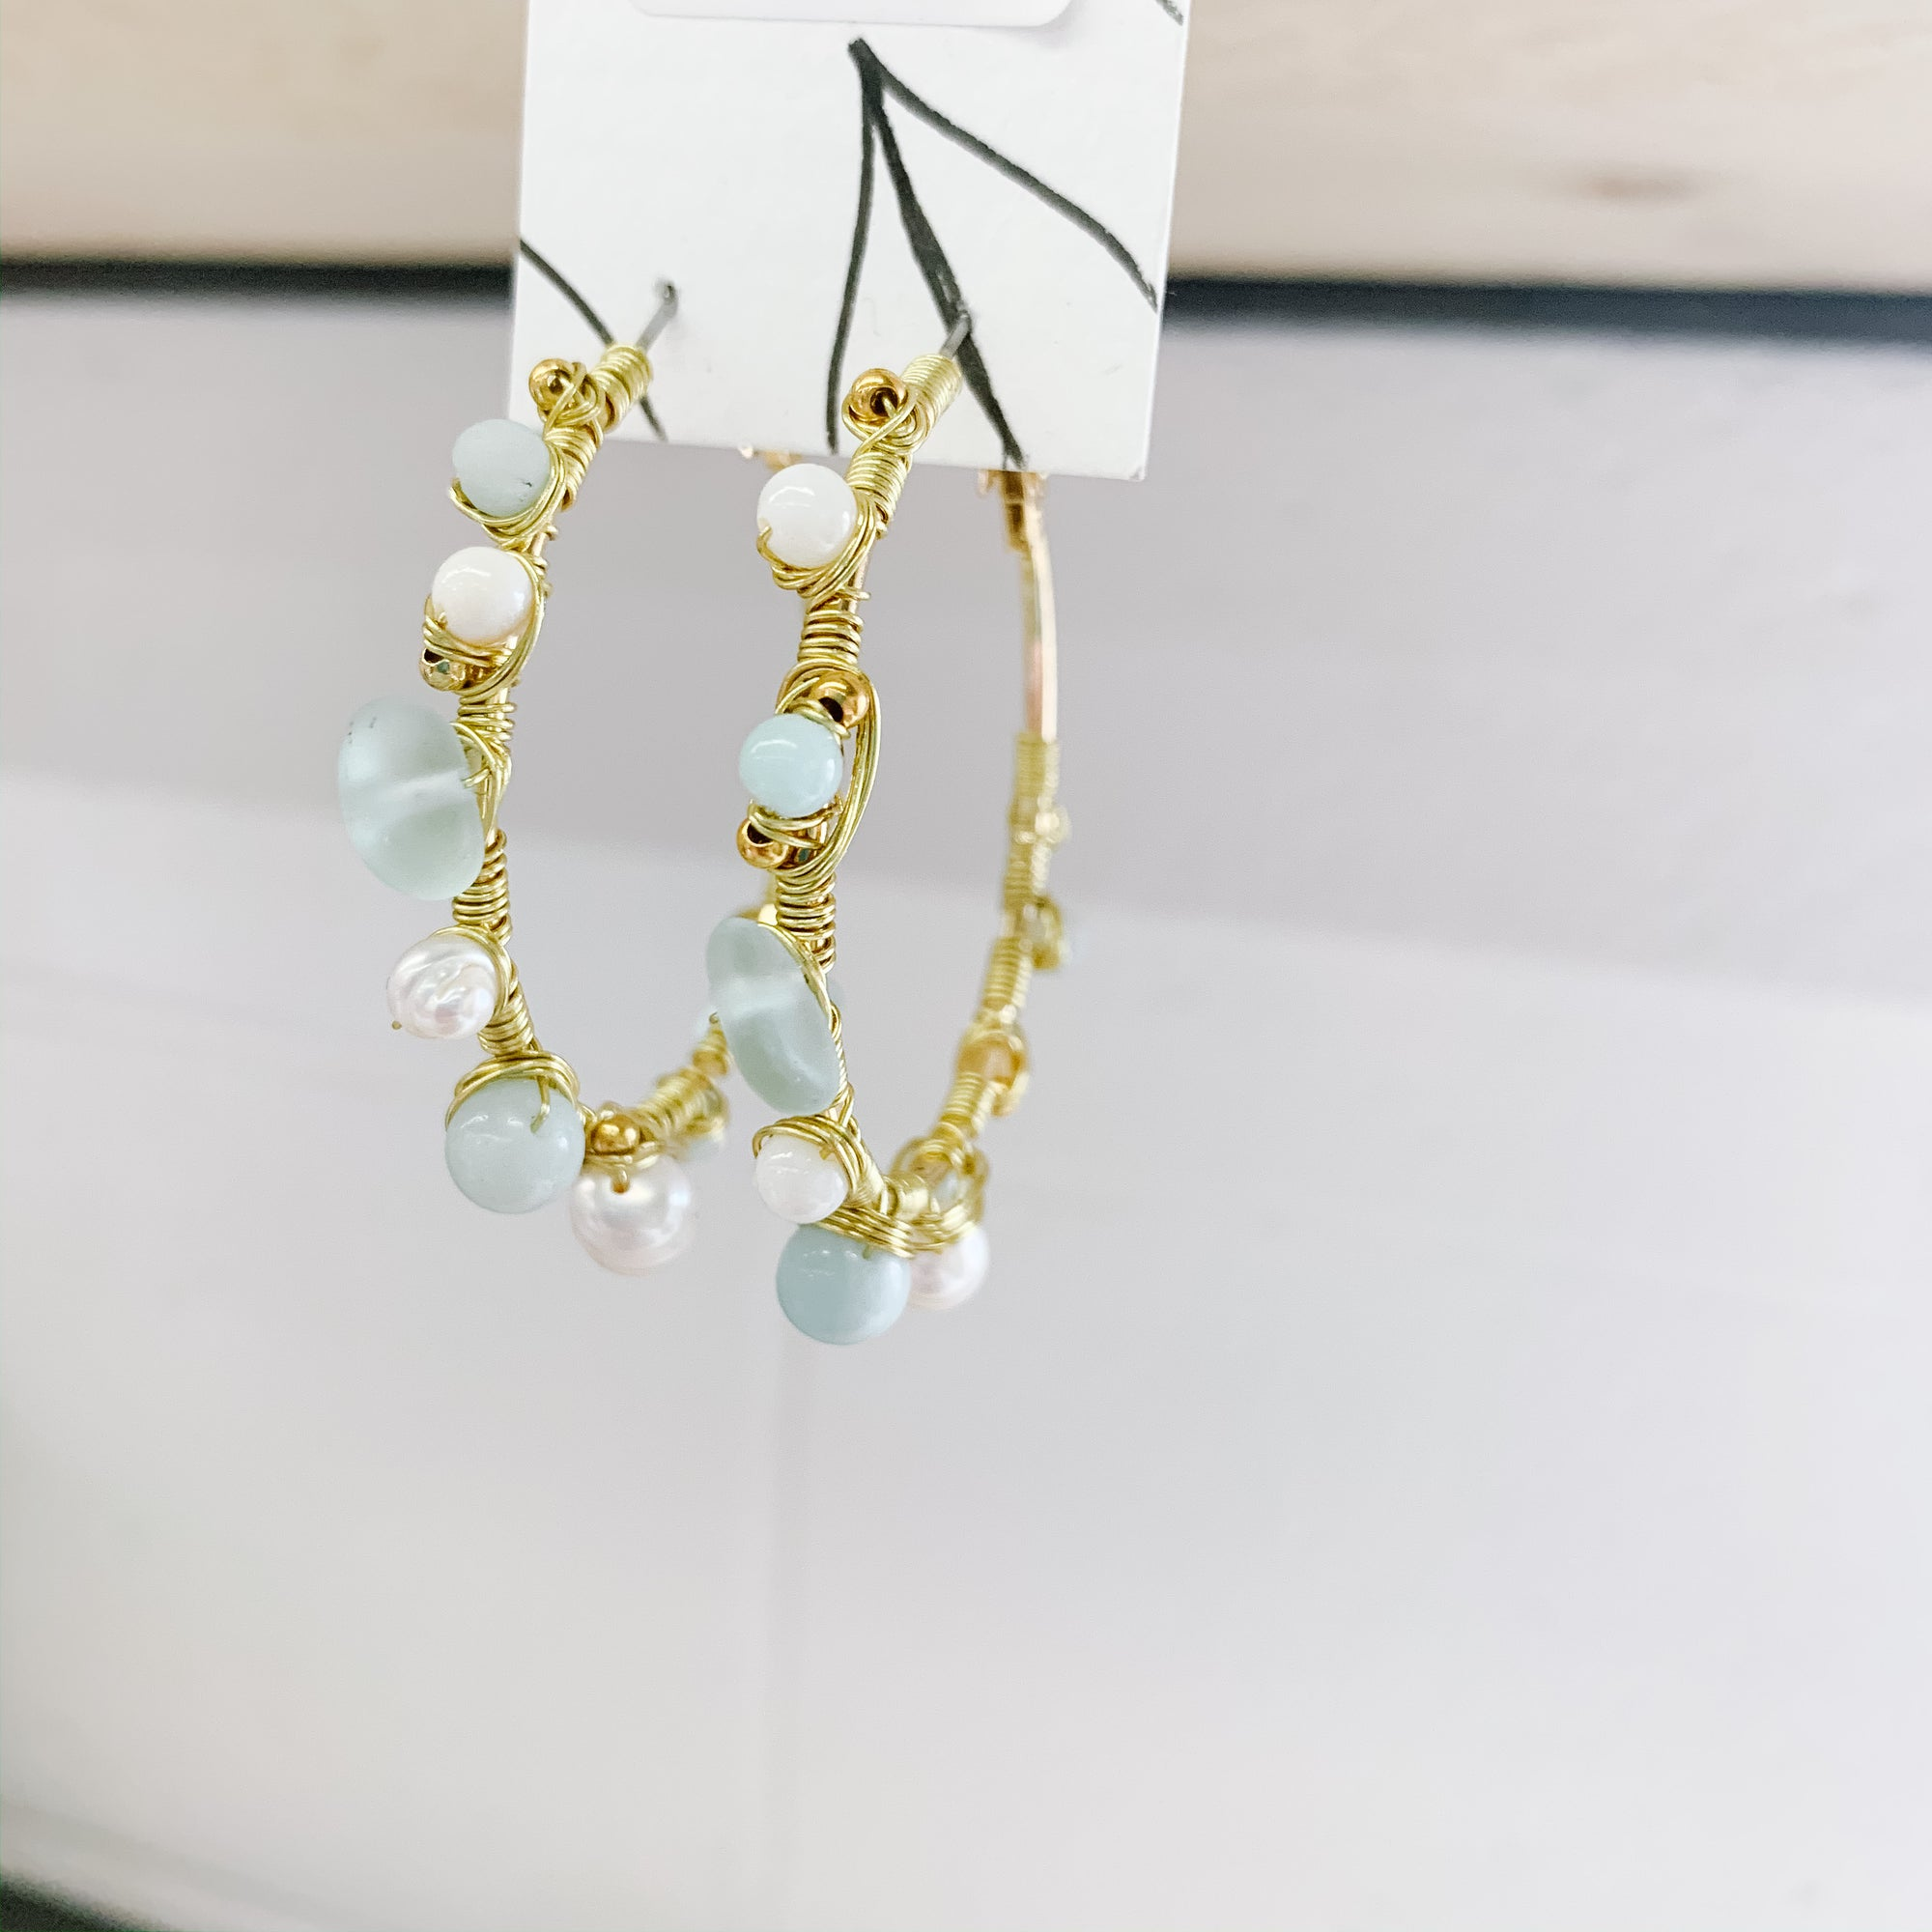 Amazonite, Sea Glass & Pearl Hoop Earrings - Femme Wares Niagara Local Small Business